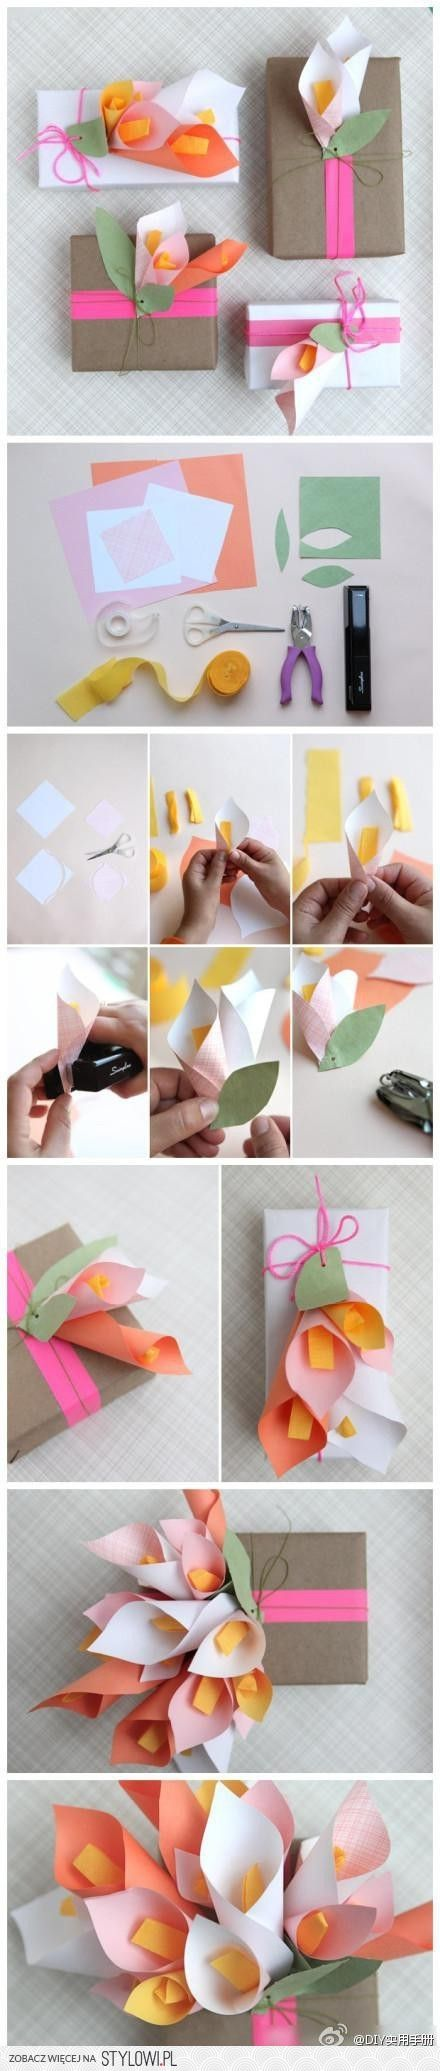 Gift wrapping idea. #christmas #gift #DIY #wrapping